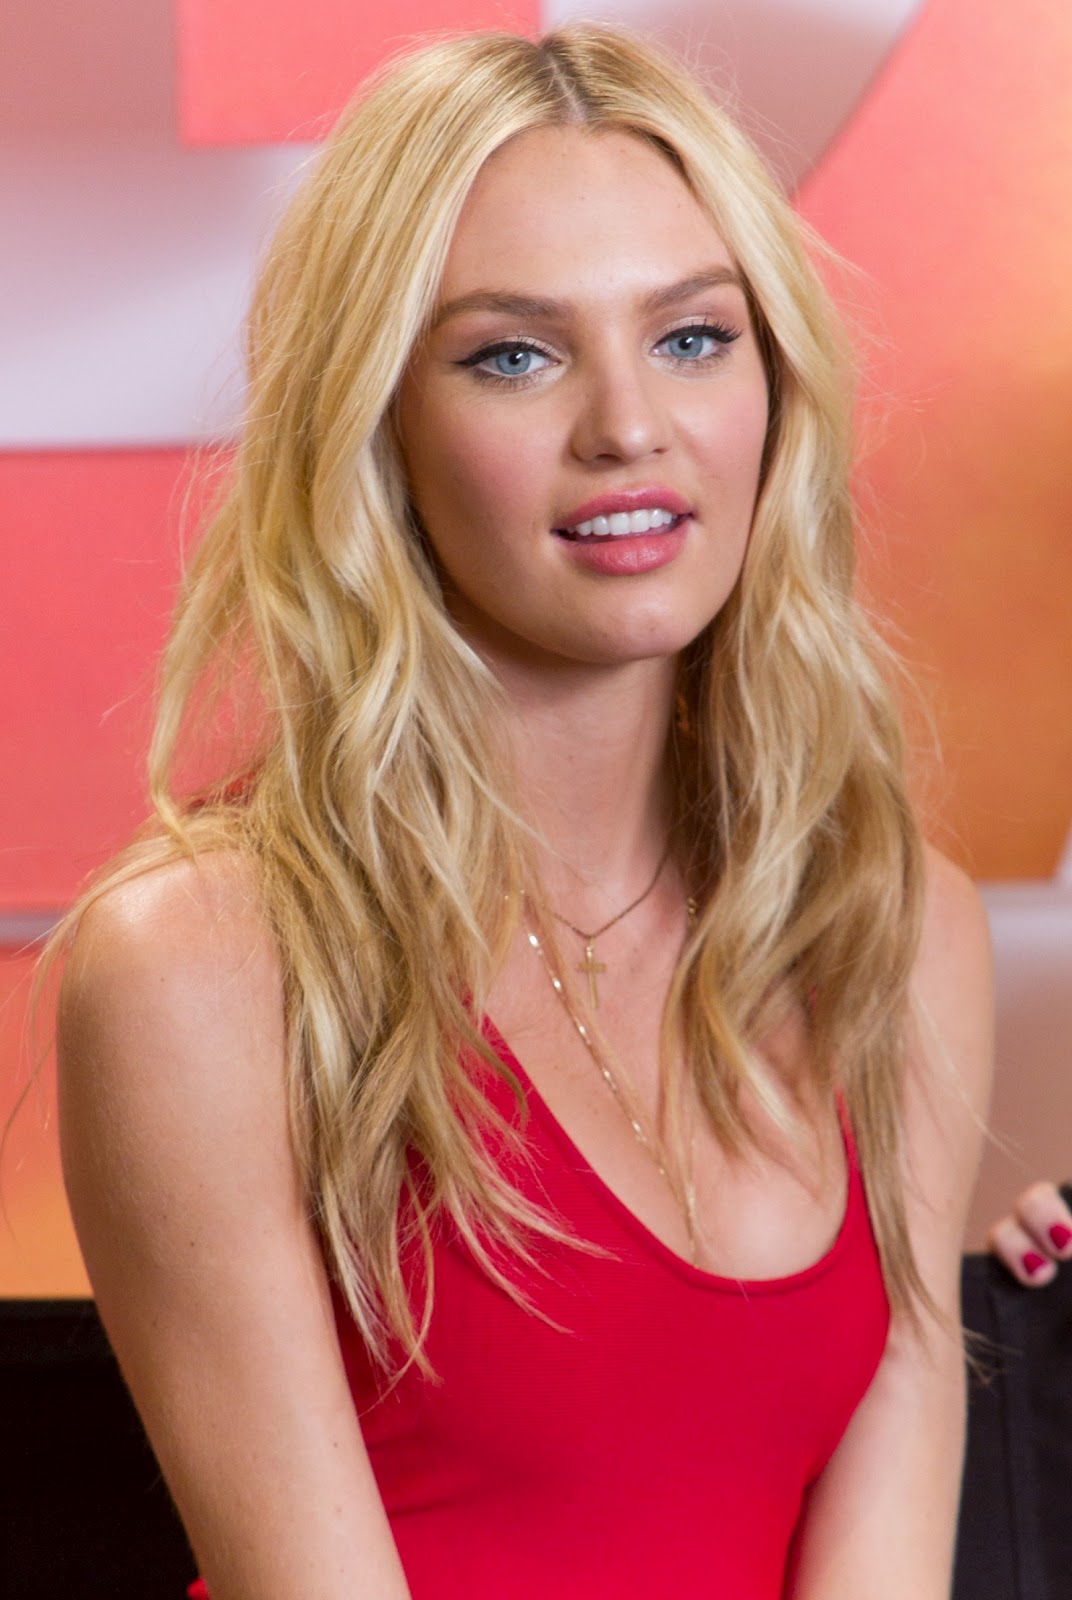 Candice Swanepoel Workout Diet Boxes And Circuit: Candice Swanepoel Victoria's Secret Very Sexy Jet